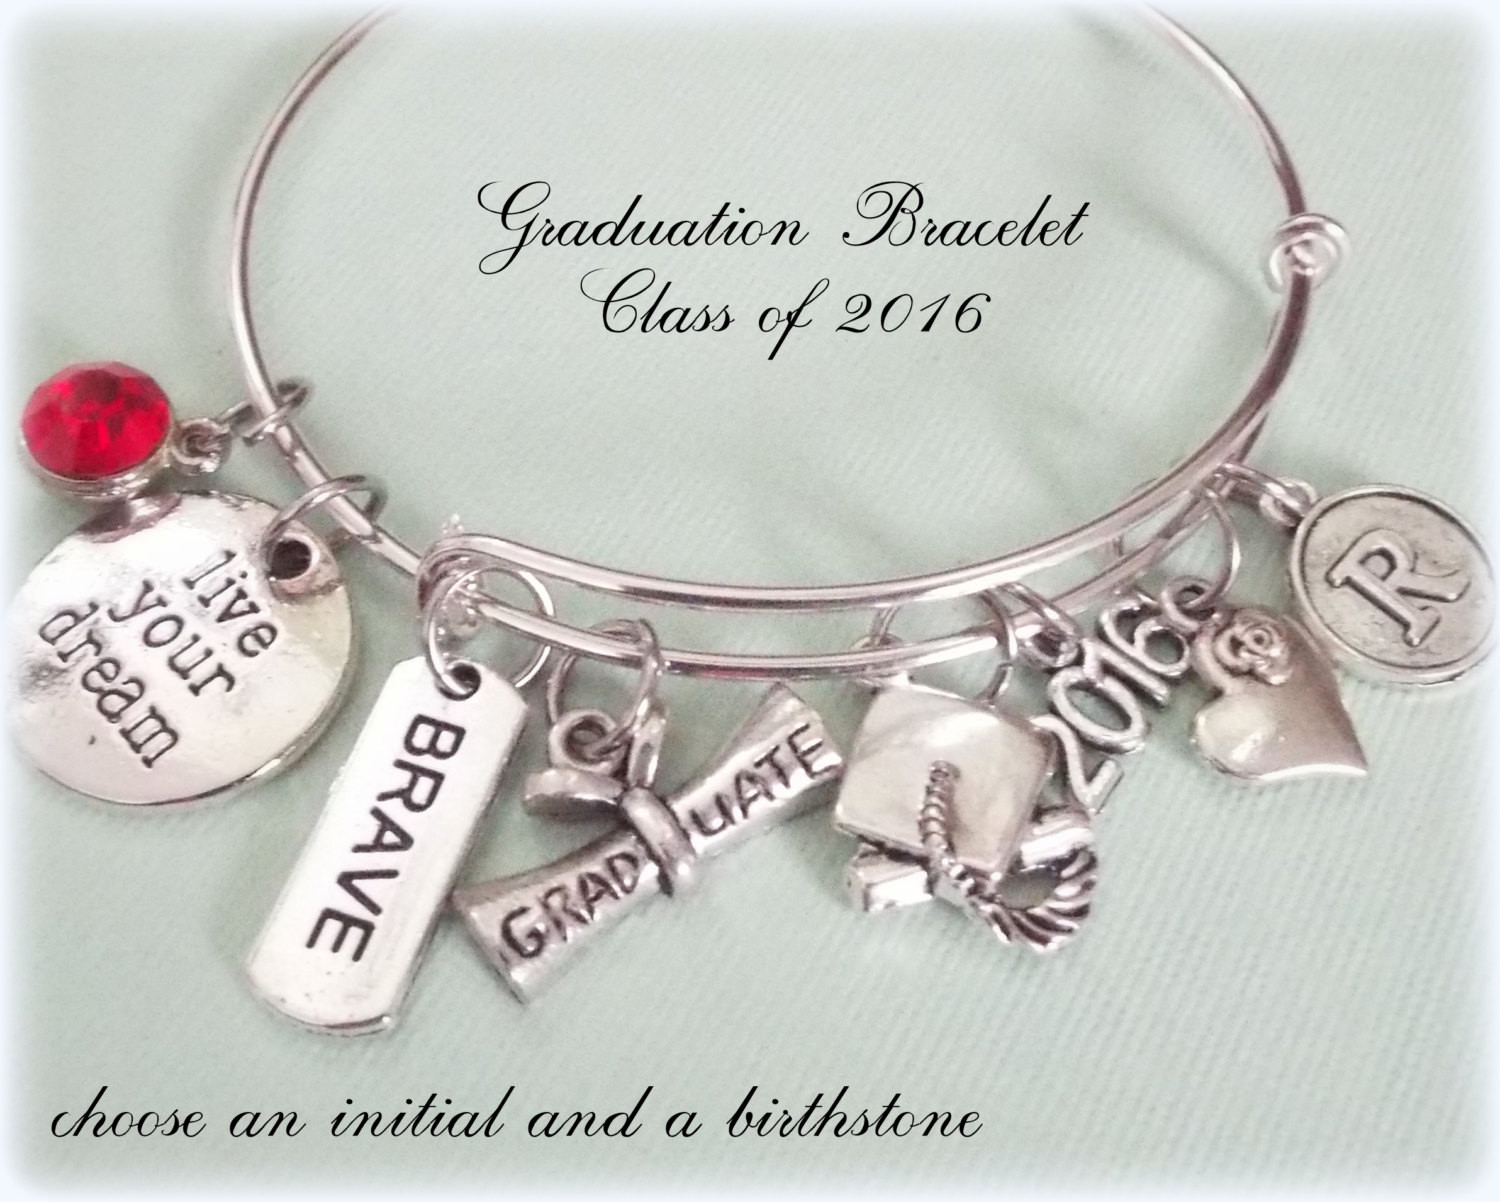 Graduation Gift Ideas For Her Masters Degree  Graduation Gift Gift for Graduate Graduation Gift for Her